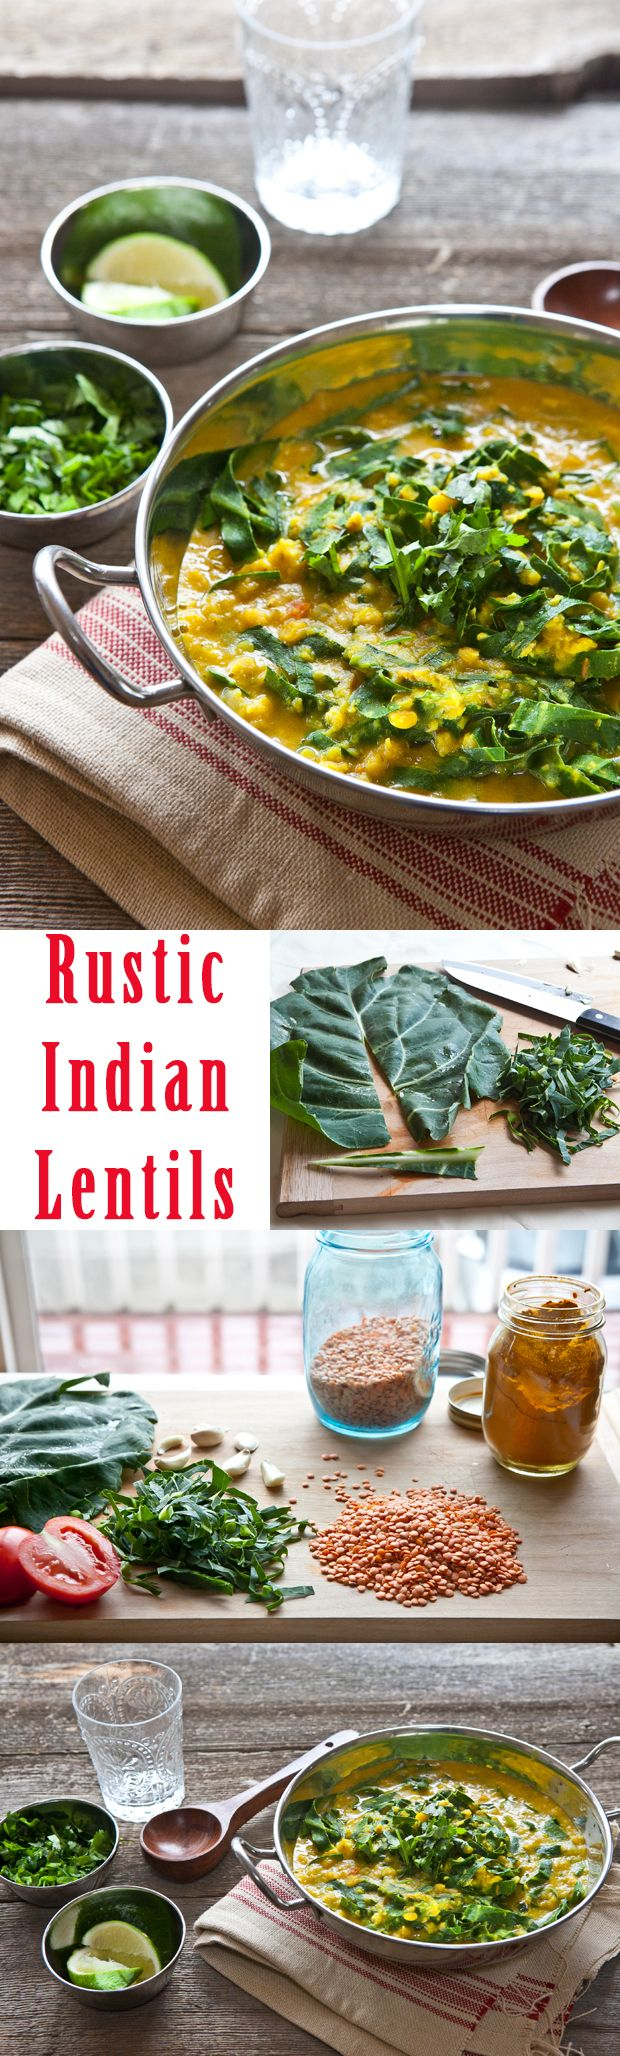 Such a great and simple recipe. Rustic Indian lentils with collard greens. A vegetarian-friendly dinner hit!